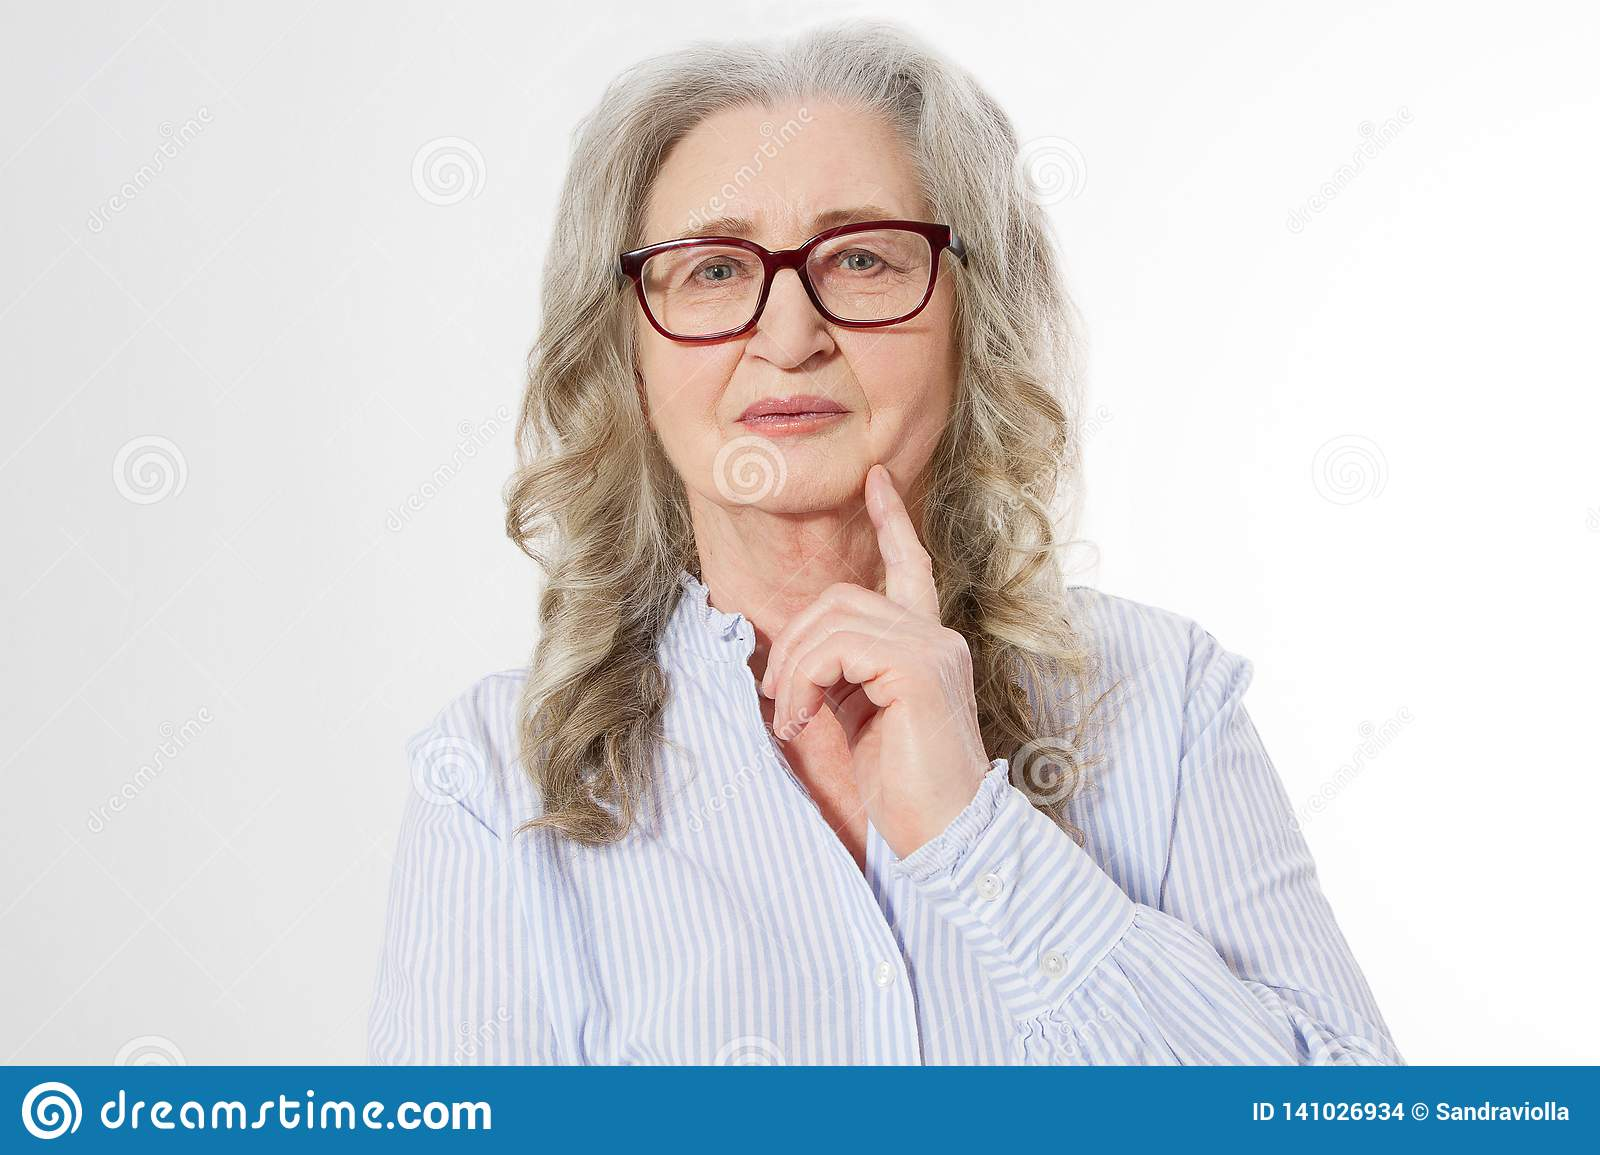 Close up Senior business woman with stylish glasses and wrinkle face isolated on white background. Mature healthy lady. Copy space